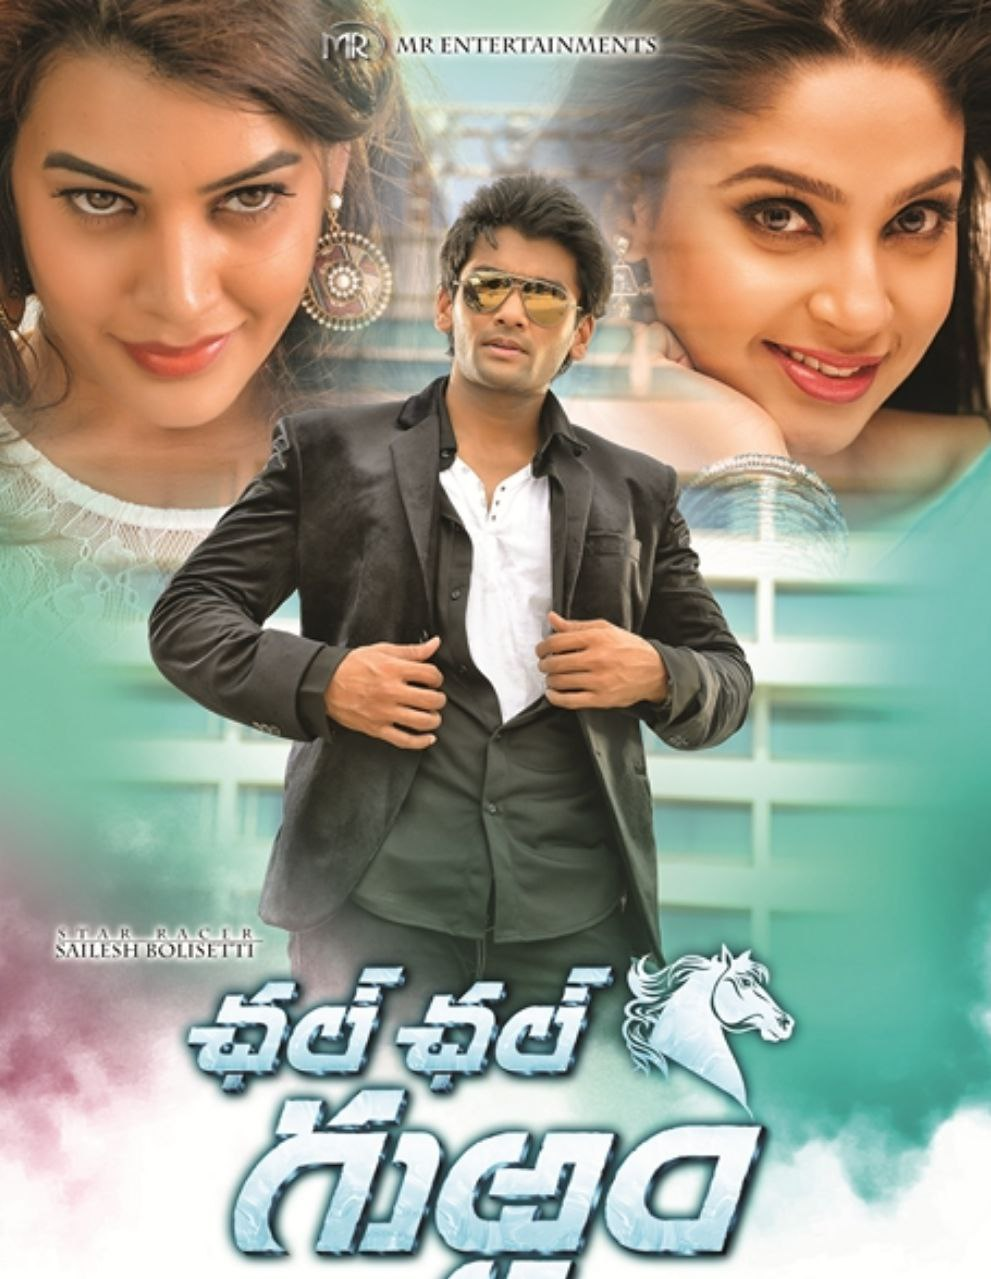 Chal Chal Gurram (Bajirao The Fighter 3) 2021 Hindi Dubbed ORG 600MB HDRip 720p HEVC x265 Download